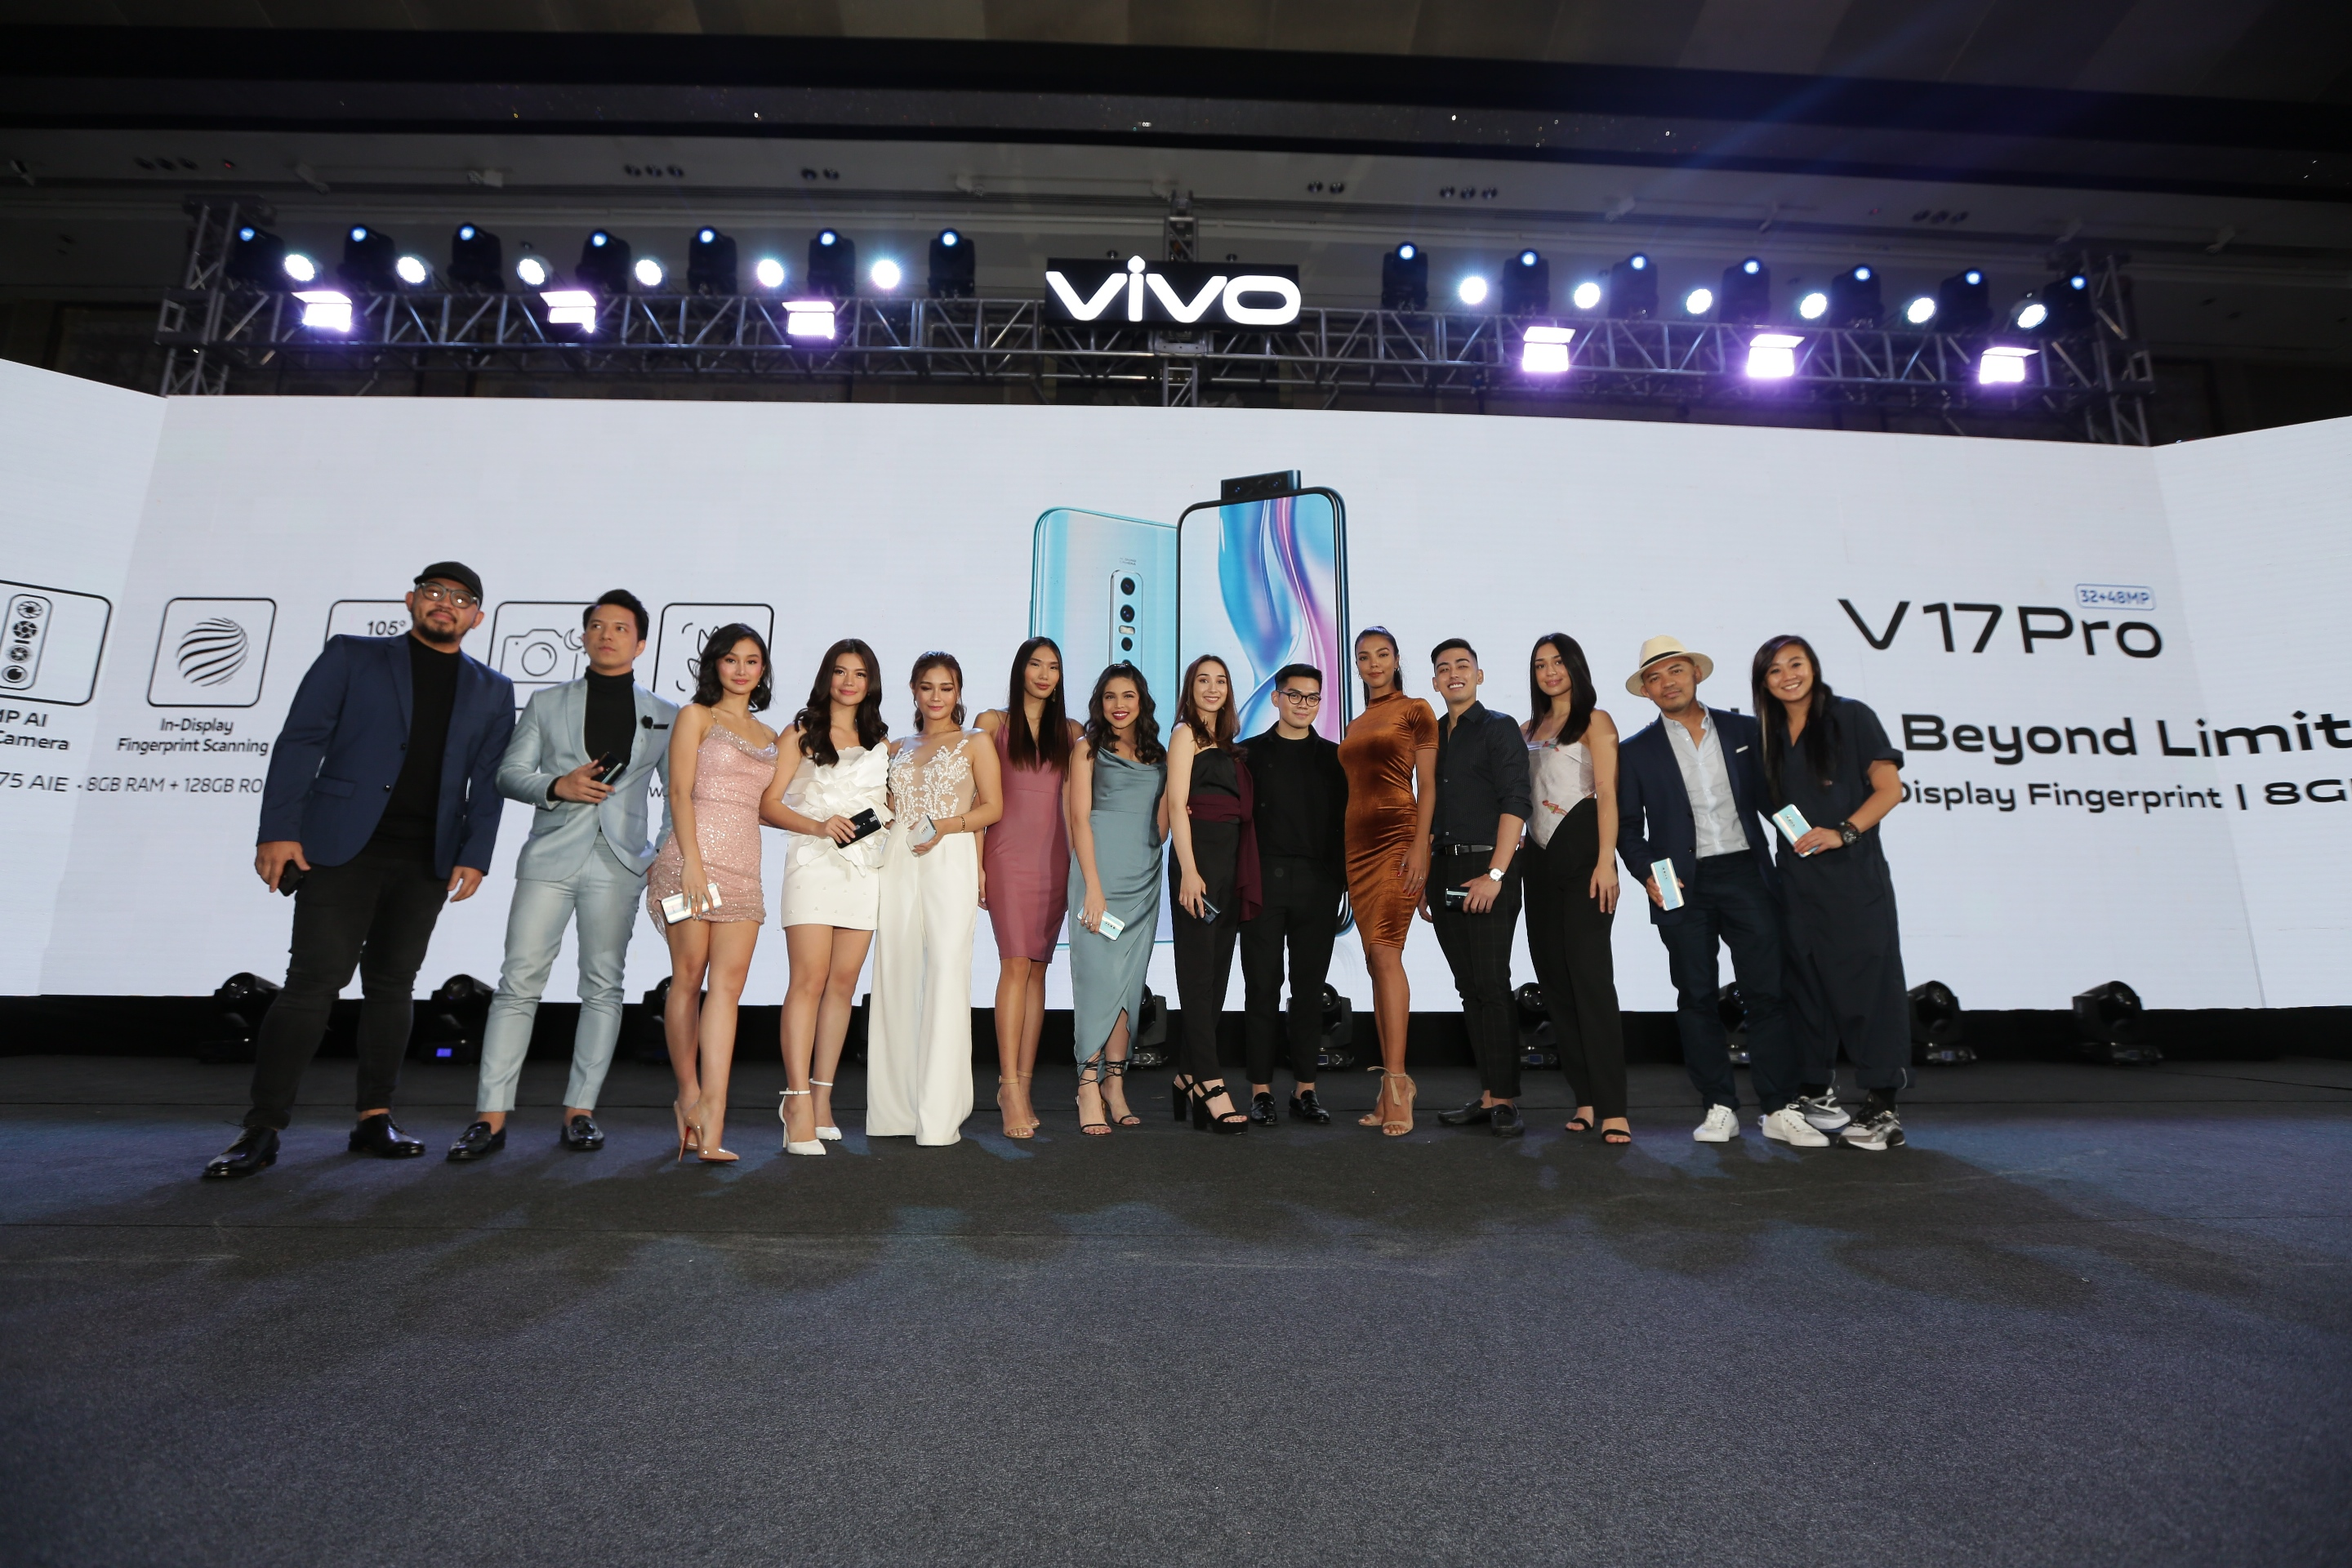 BRAND AMBASSADORS. Maine Mendoza (center) joins Chienna Filomeno, Verniece Enciso, Vern Enciso, TJ Monterde, Xander Angeles, and other Vivo brand ambassadors in welcoming the V17 Pro.